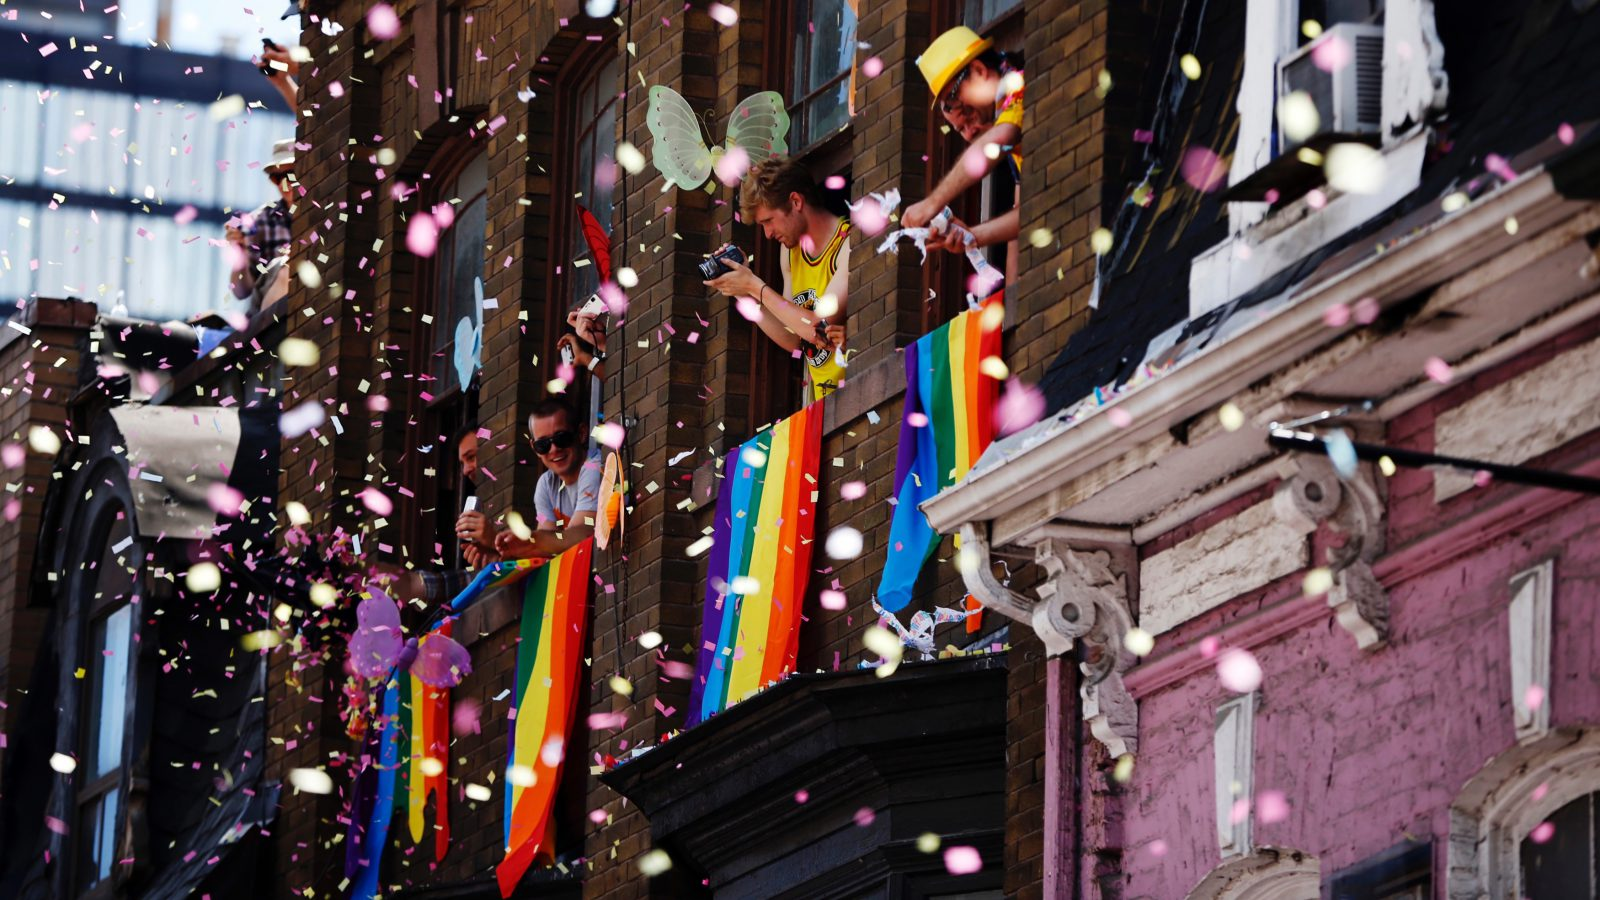 People throw confetti from their windows during the Gay Pride parade in Toronto July 1, 2012.    REUTERS/Mark Blinch (CANADA - Tags: SOCIETY TPX IMAGES OF THE DAY) - RTR34H46